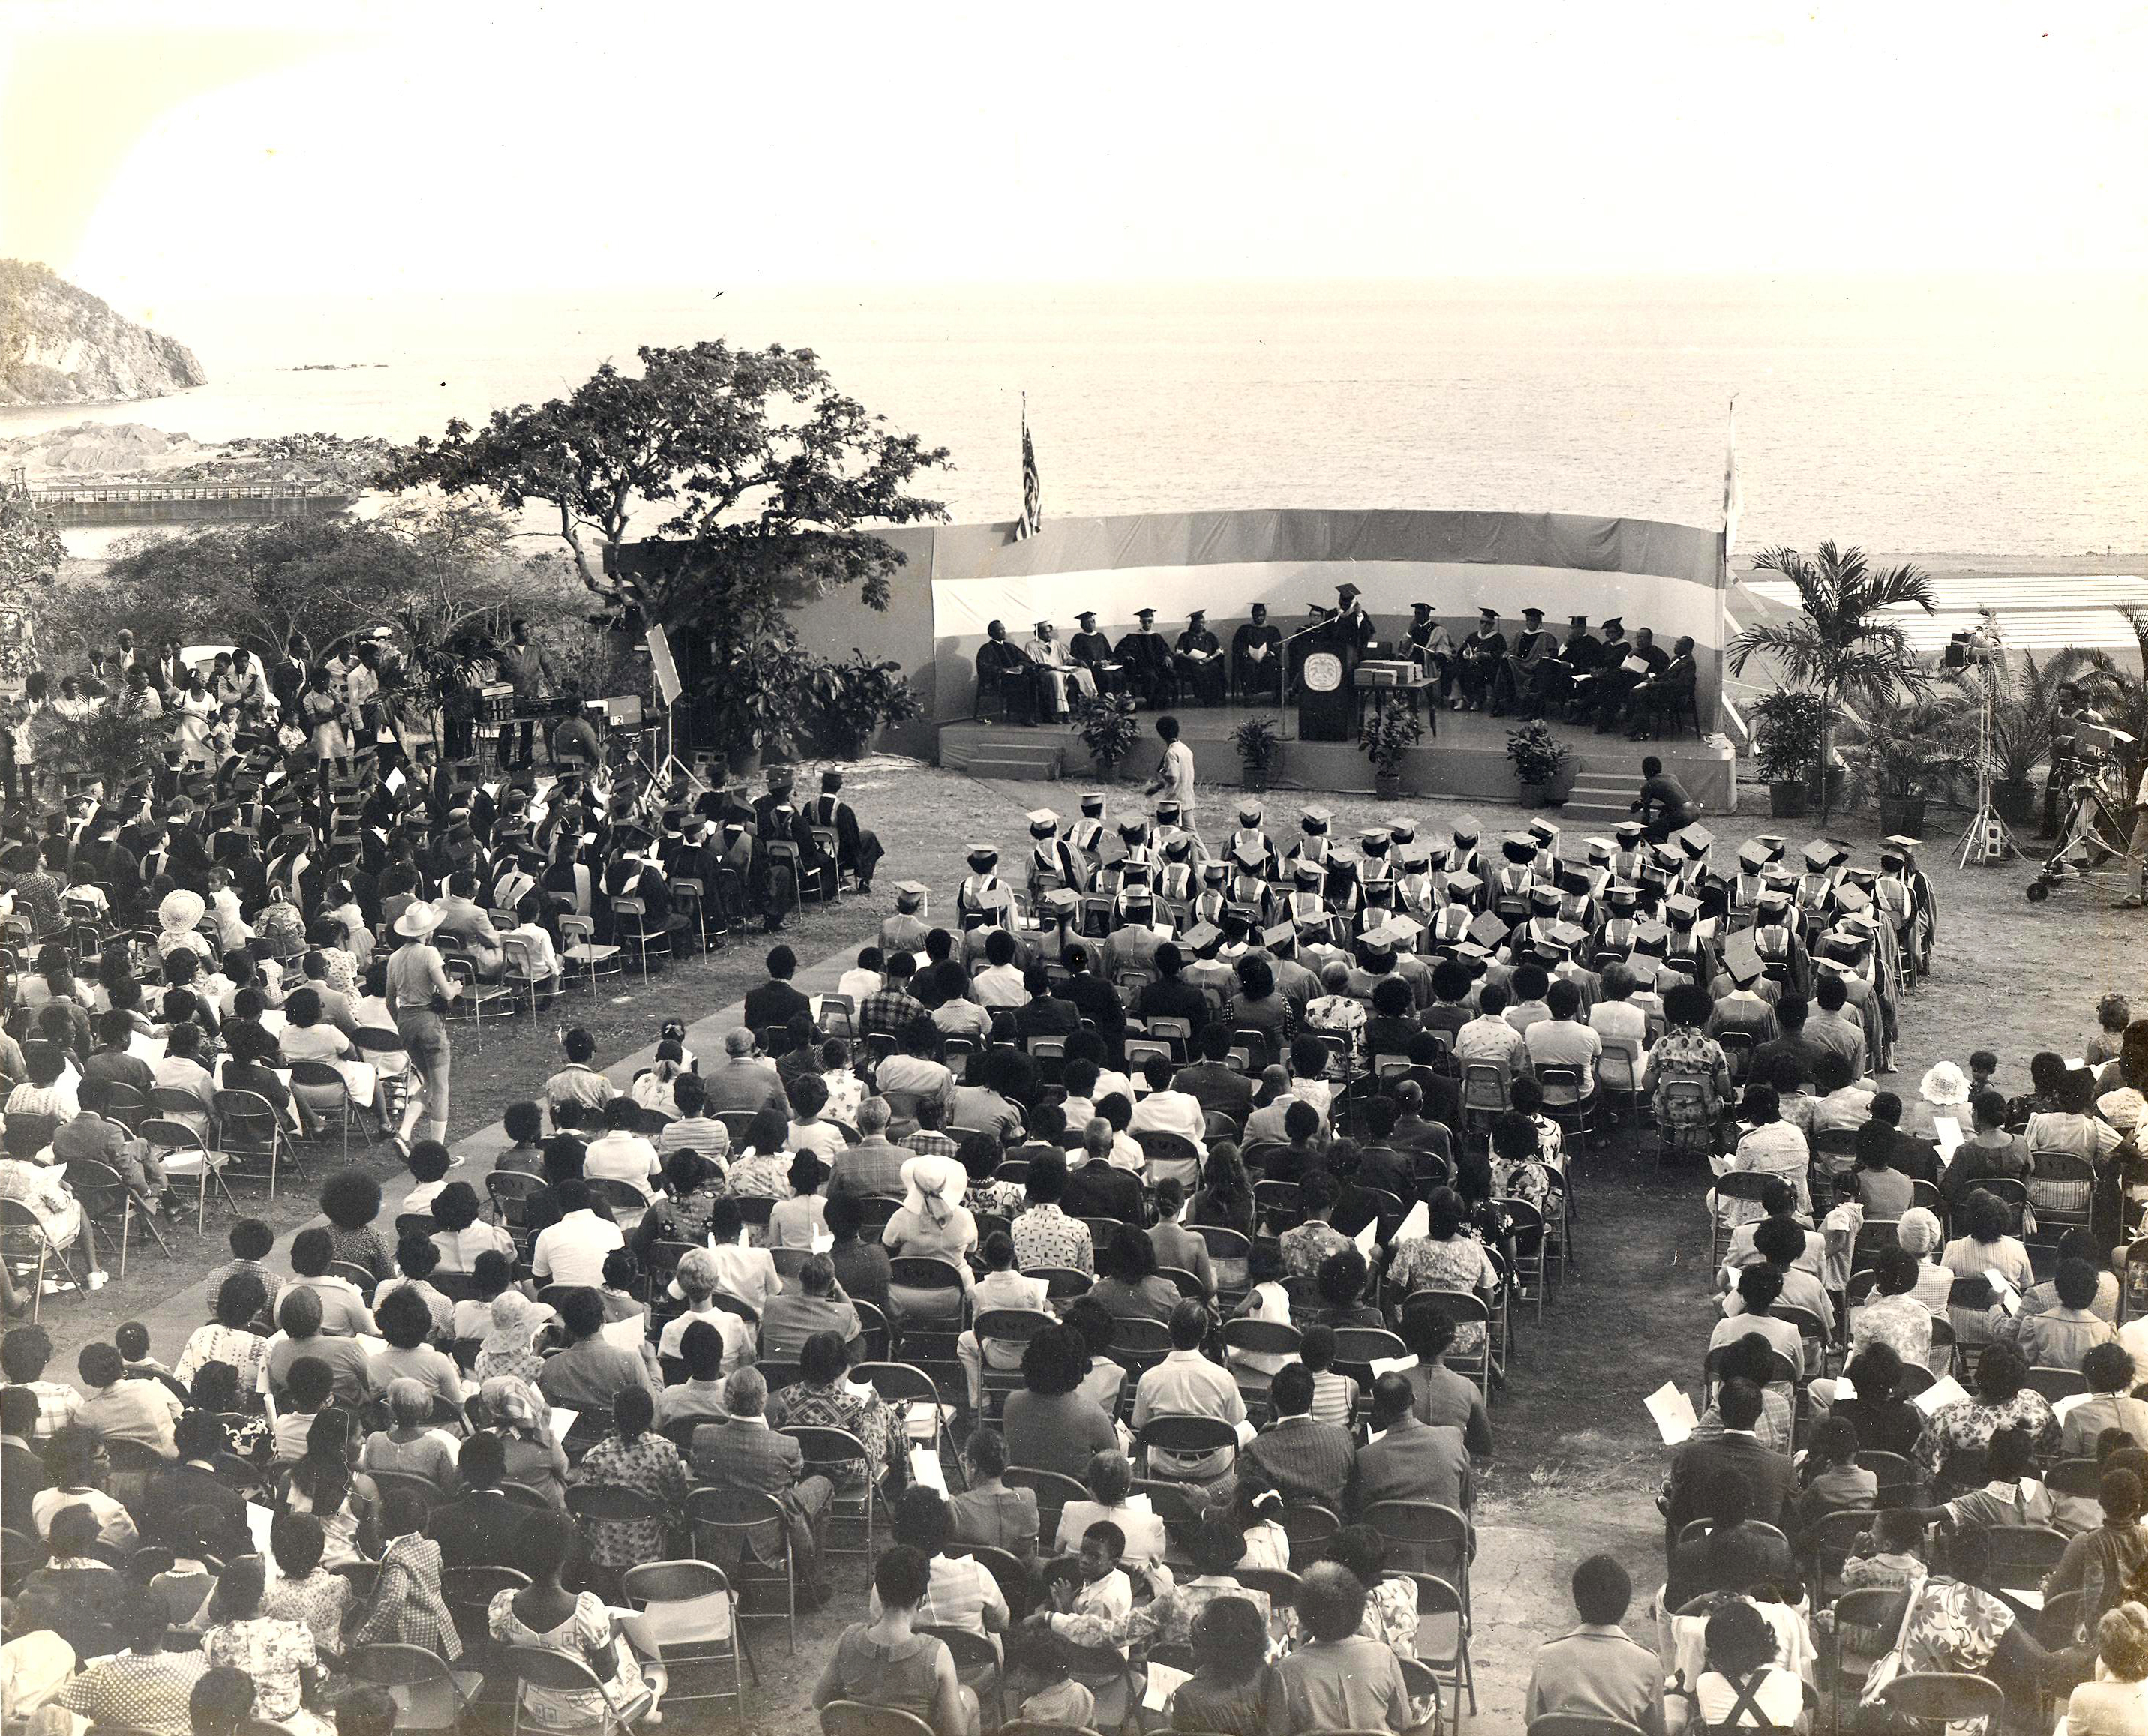 College of the Virgin Islands early 1960s Alumnus